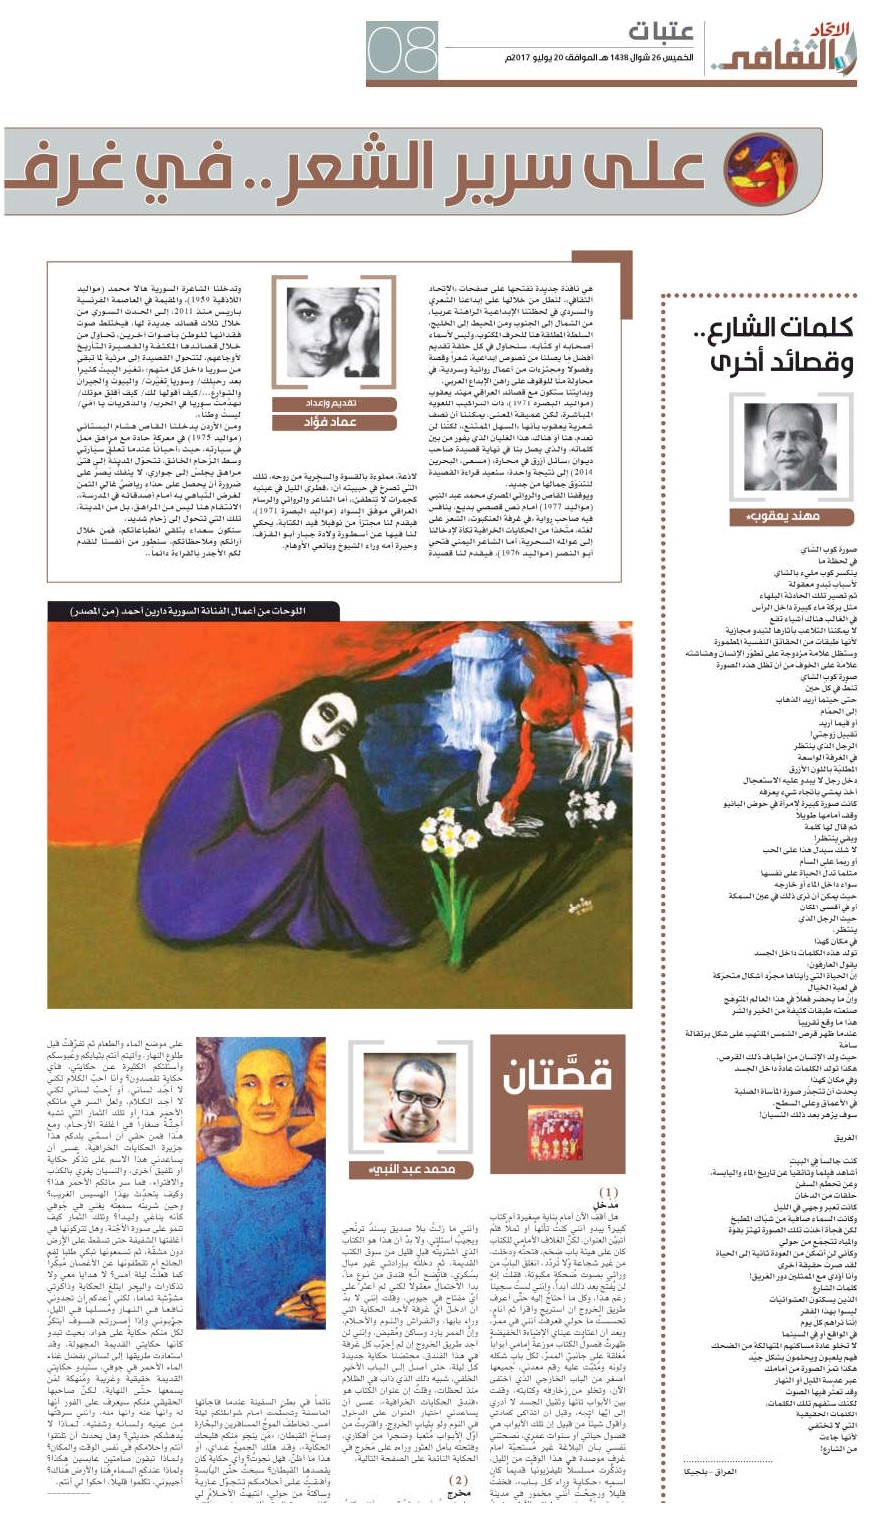 Alithihad Culture Newspaper on 20th July 2017 - Page 8